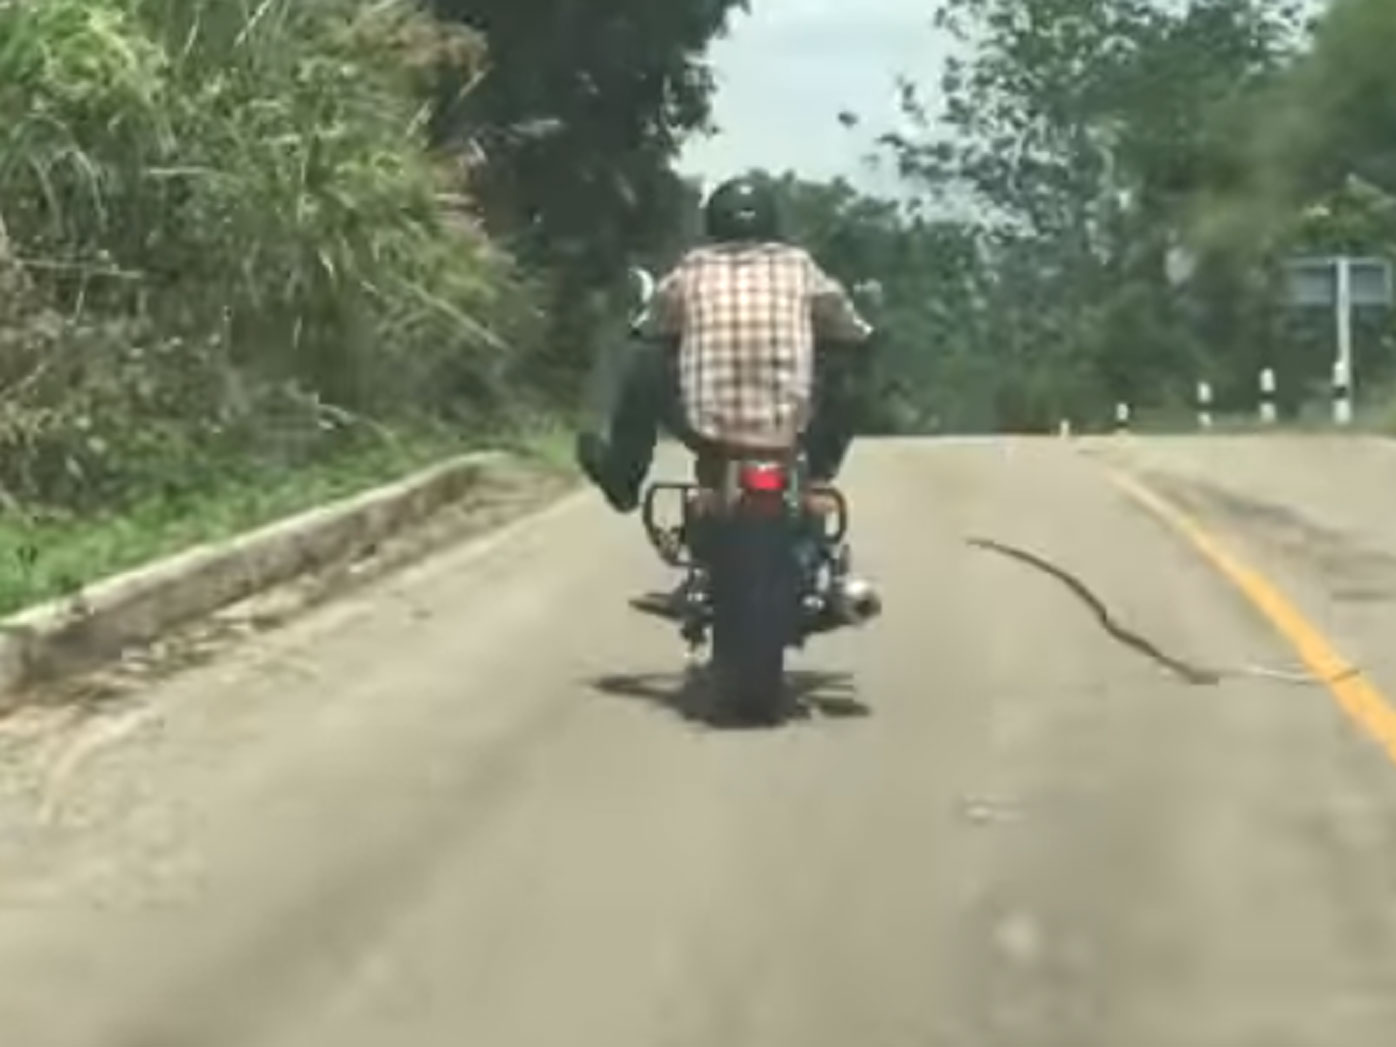 Motorcyclist takes evasive action to avoid 'flying' snake; video